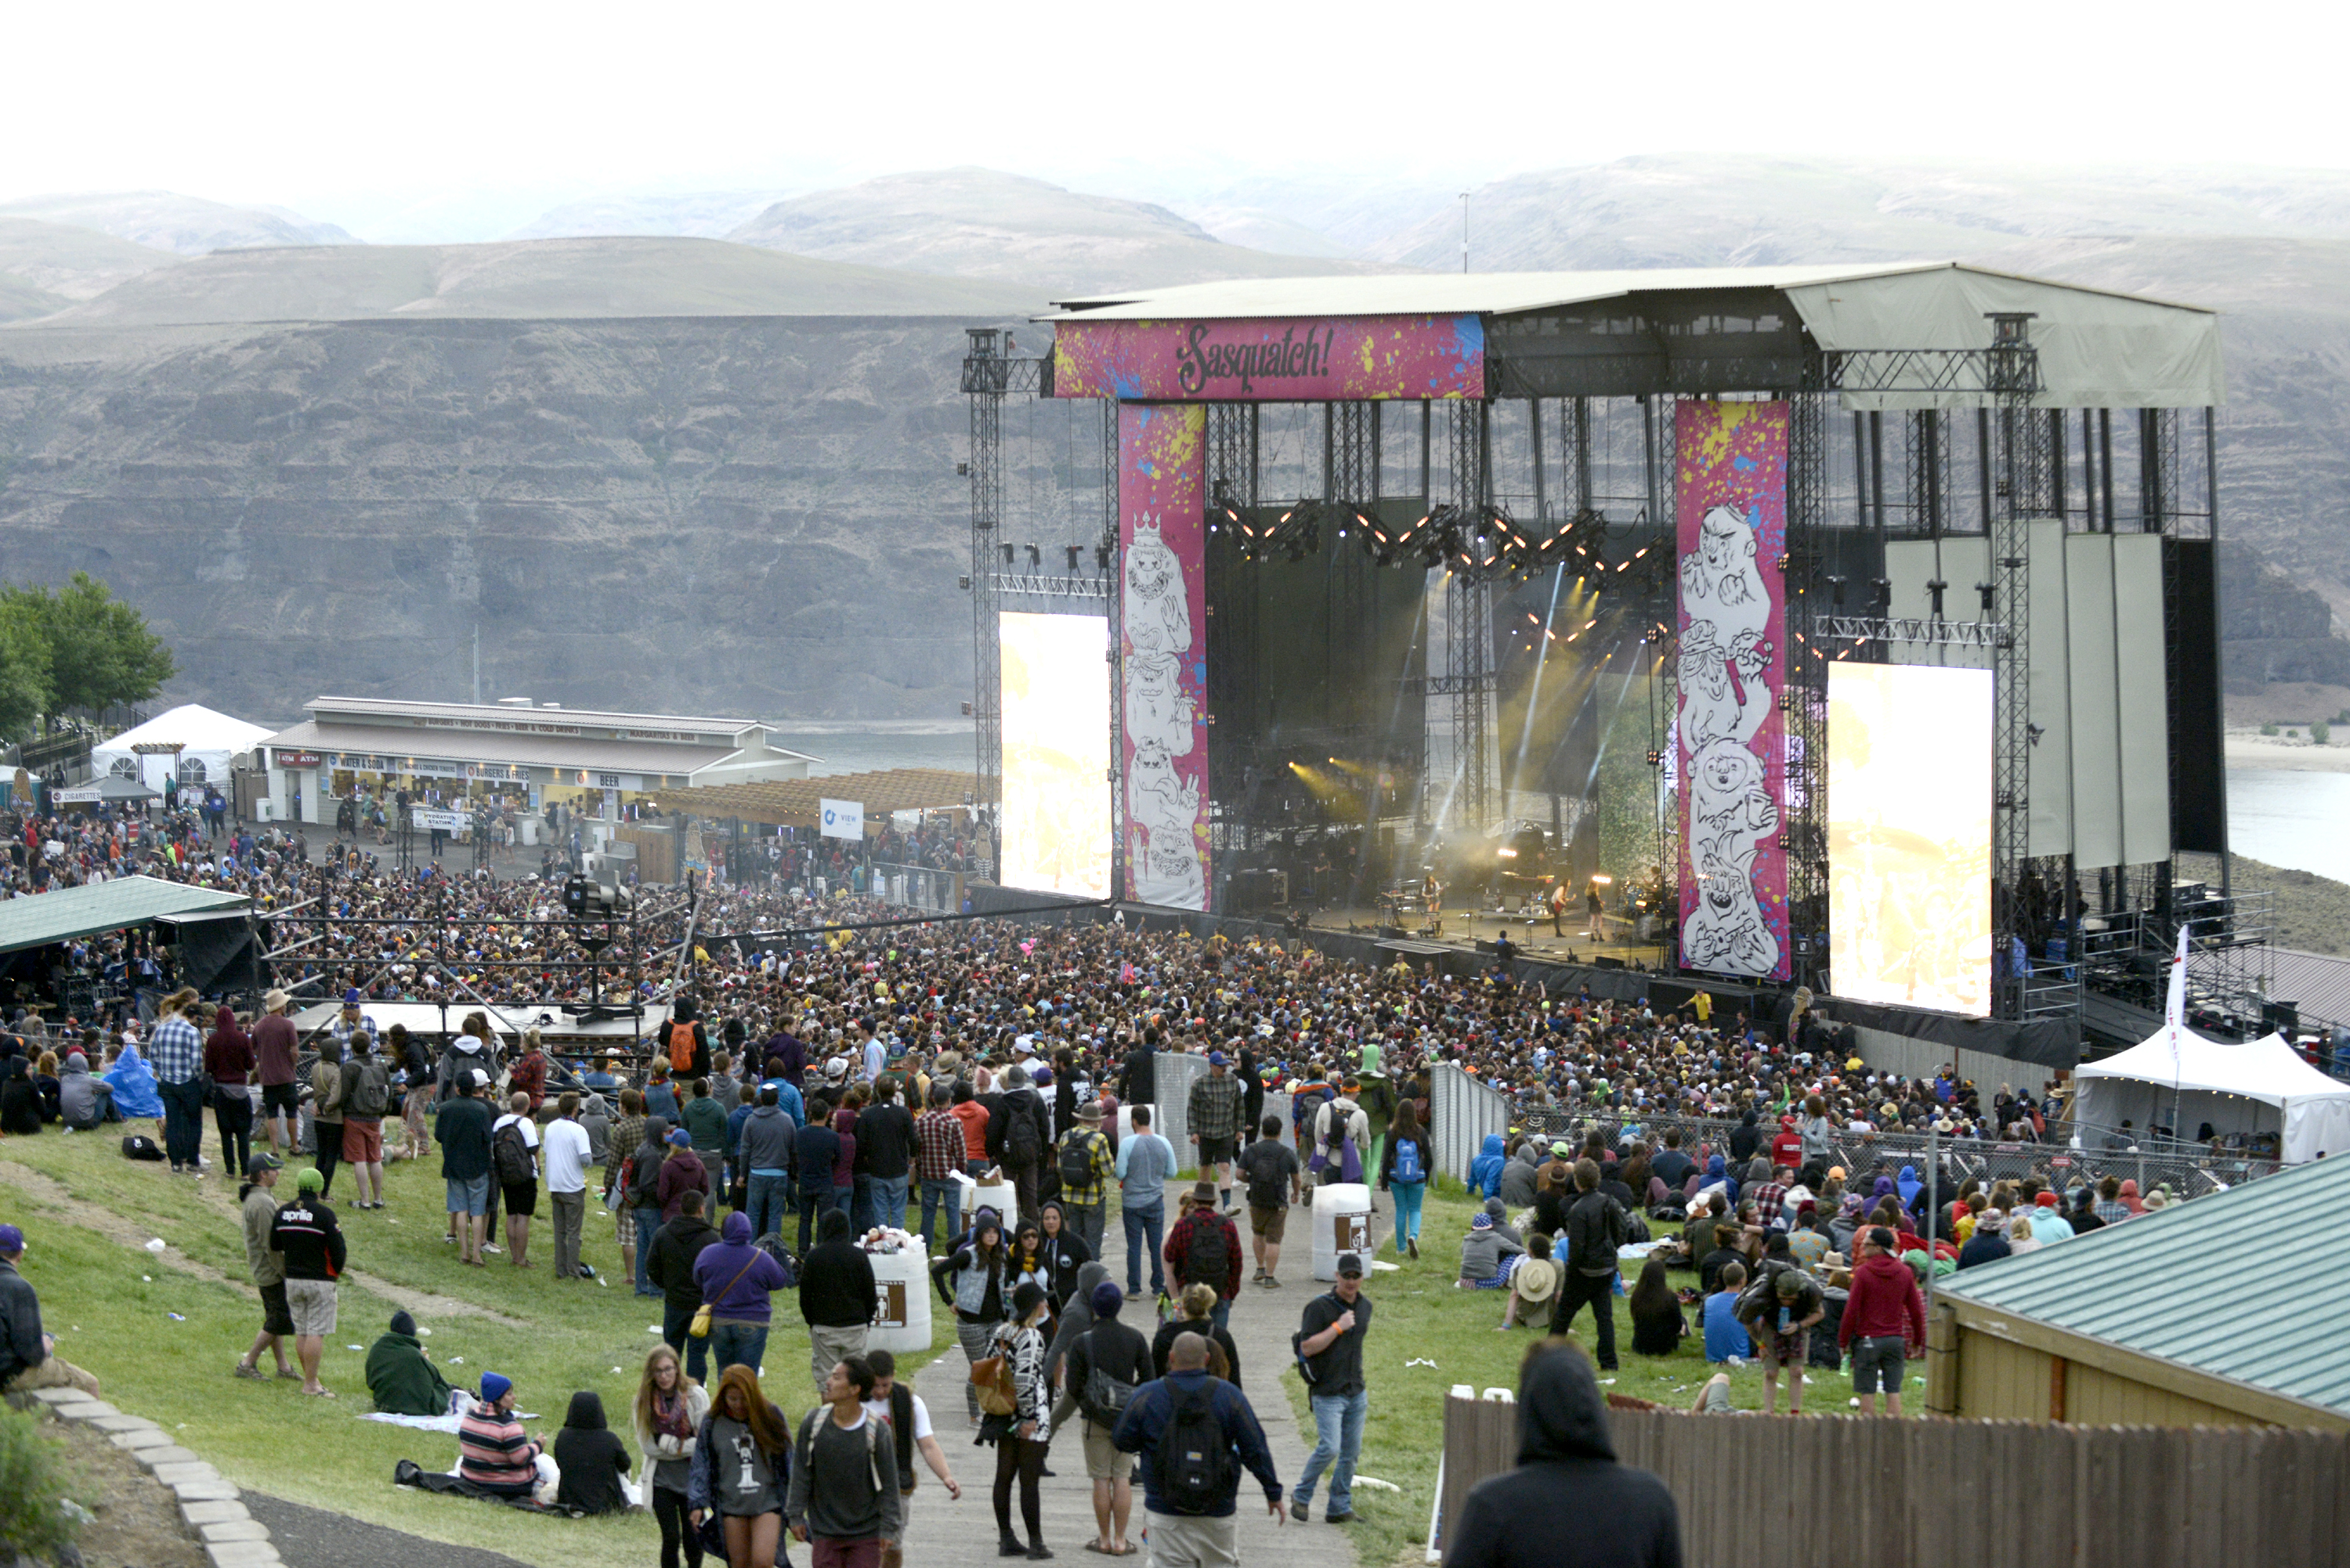 The crowd as HAIM performs during the Saquatch! Music Festival at the Gorge Amphitheater on May 25, 2014 in George, Washington